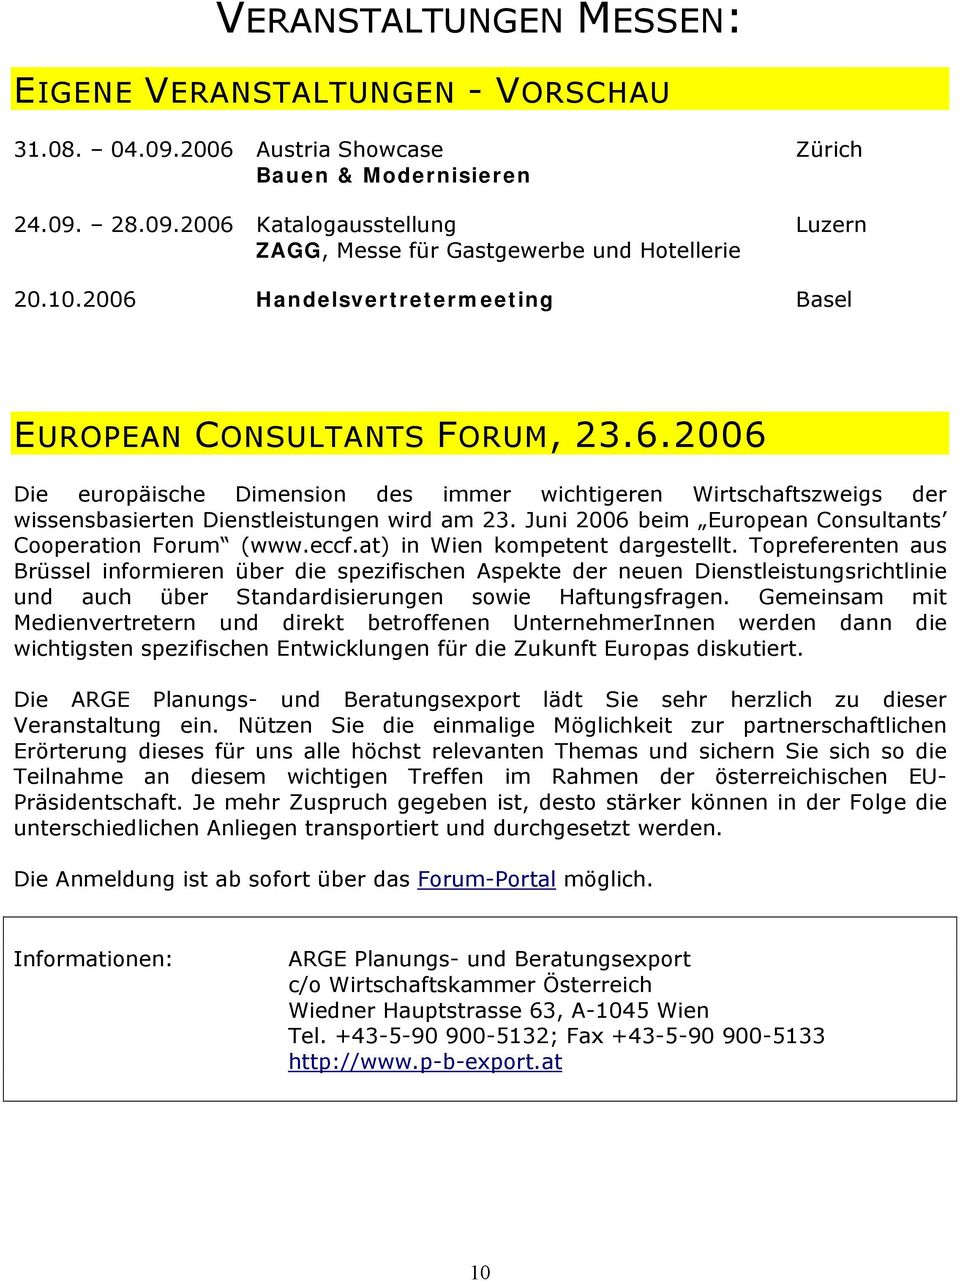 Juni 2006 beim European Consultants Cooperation Forum (www.eccf.at) in Wien kompetent dargestellt.